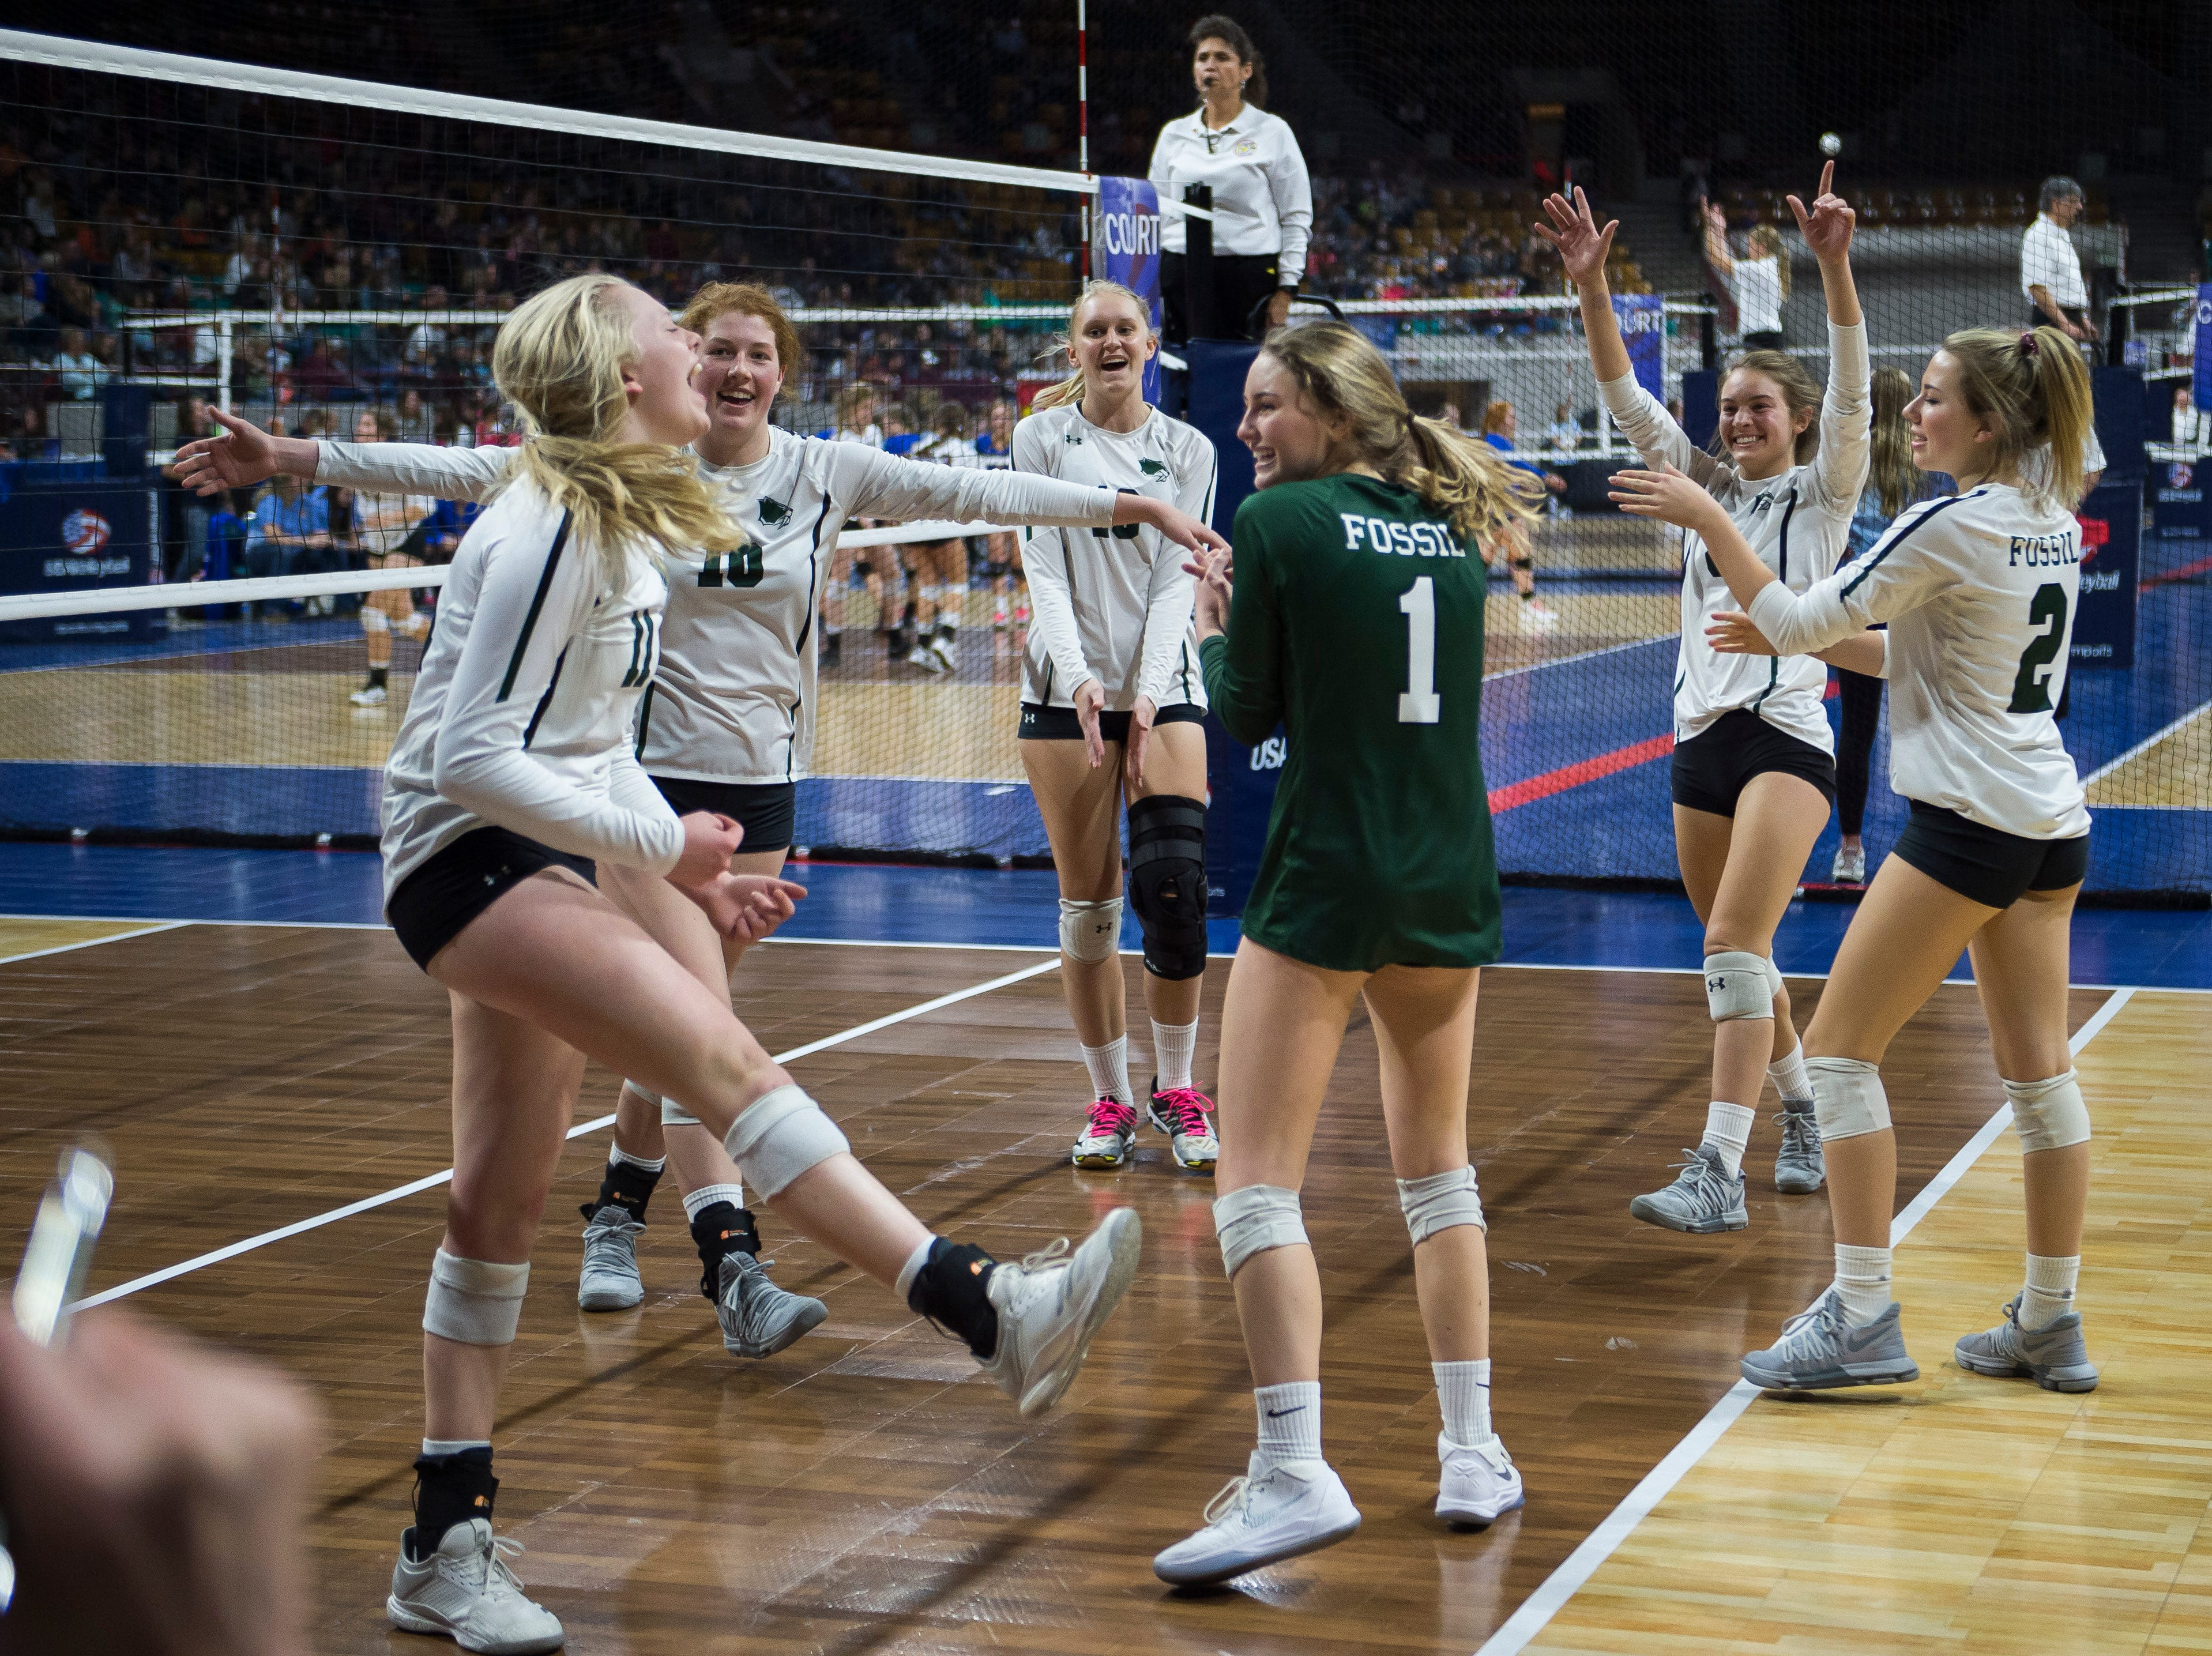 The Fossil Ridge High School volleyball team celebrate after beating Windsor High School in a state first round game on Thursday, Nov. 8, 2018, at the Denver Coliseum in Denver, Colo.